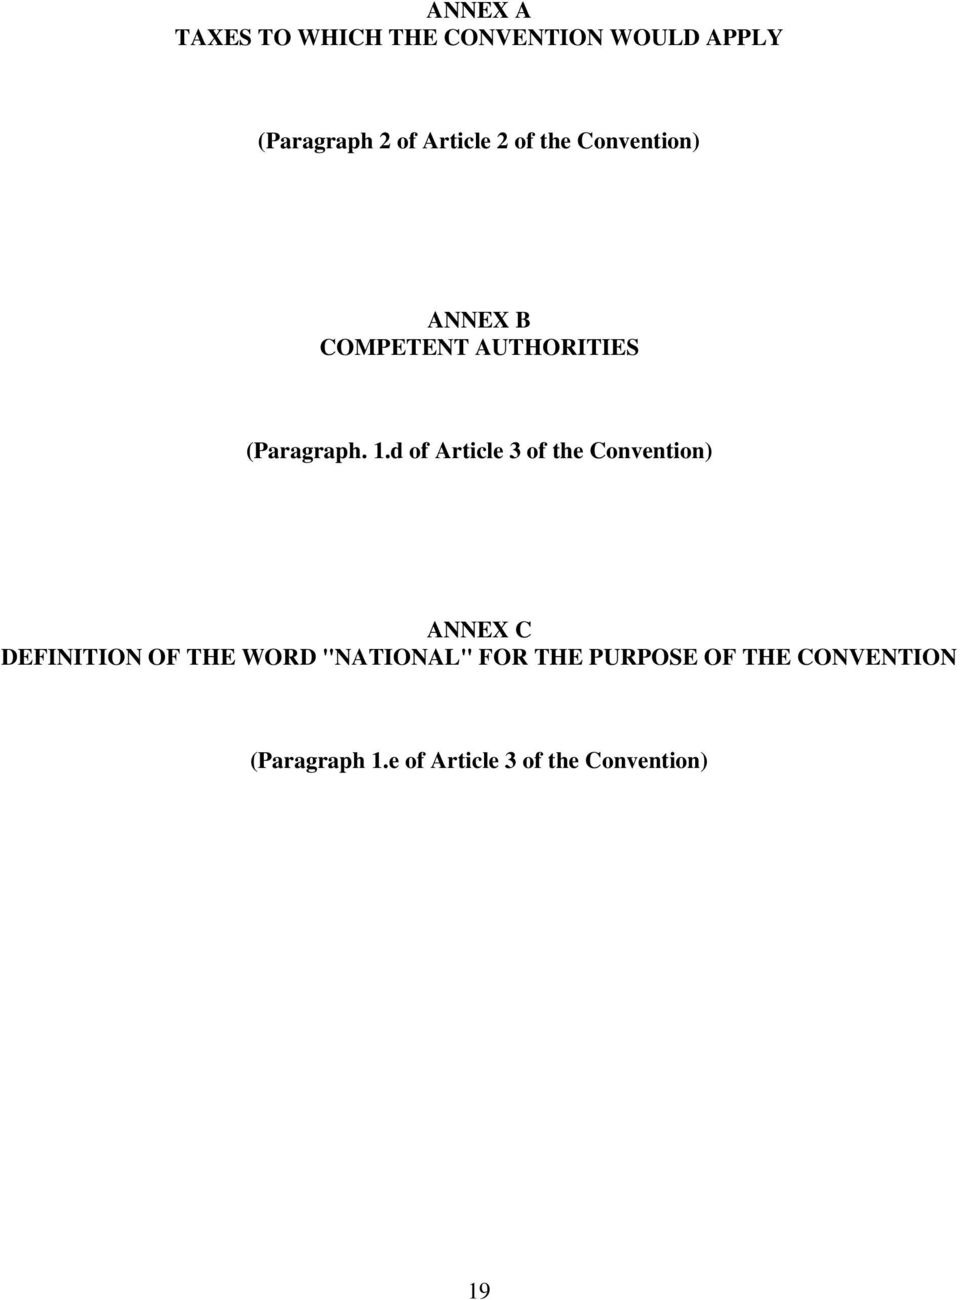 d of Article 3 of the Convention) ANNEX C DEFINITION OF THE WORD